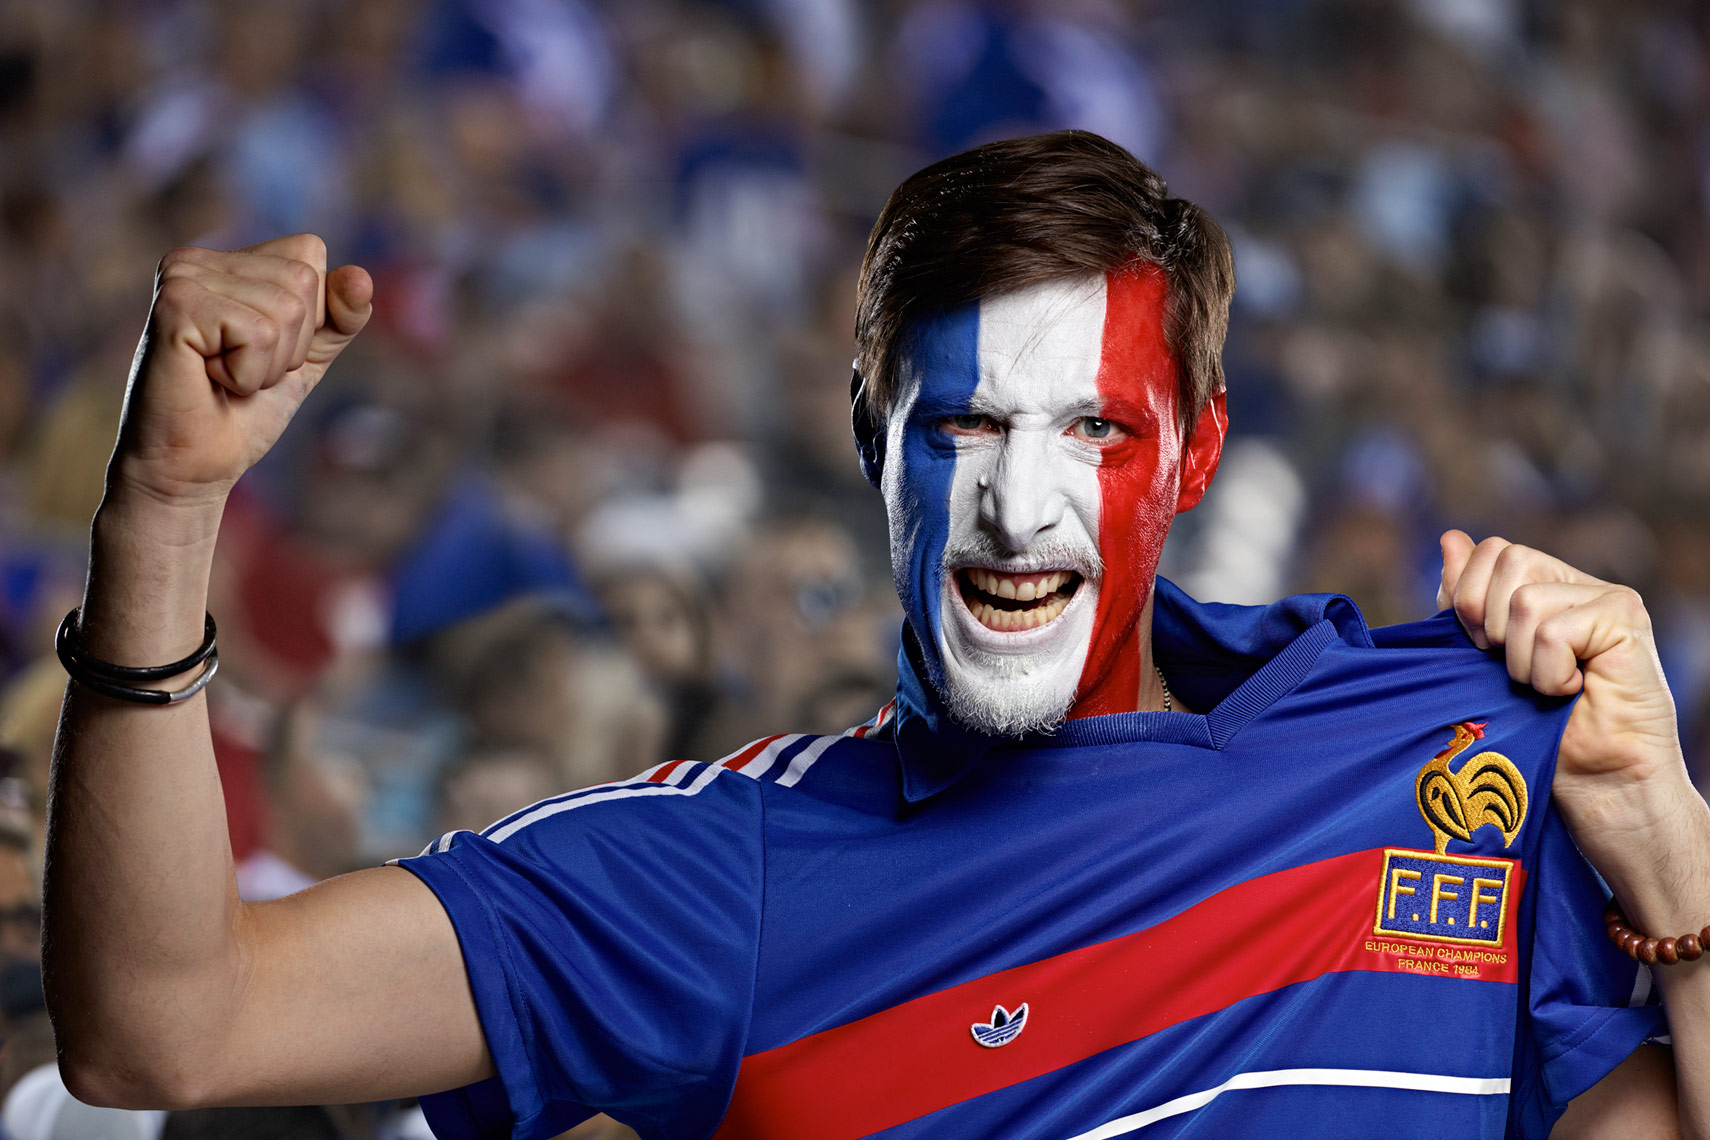 French Football soccer fan face paint photo by Monte Isom